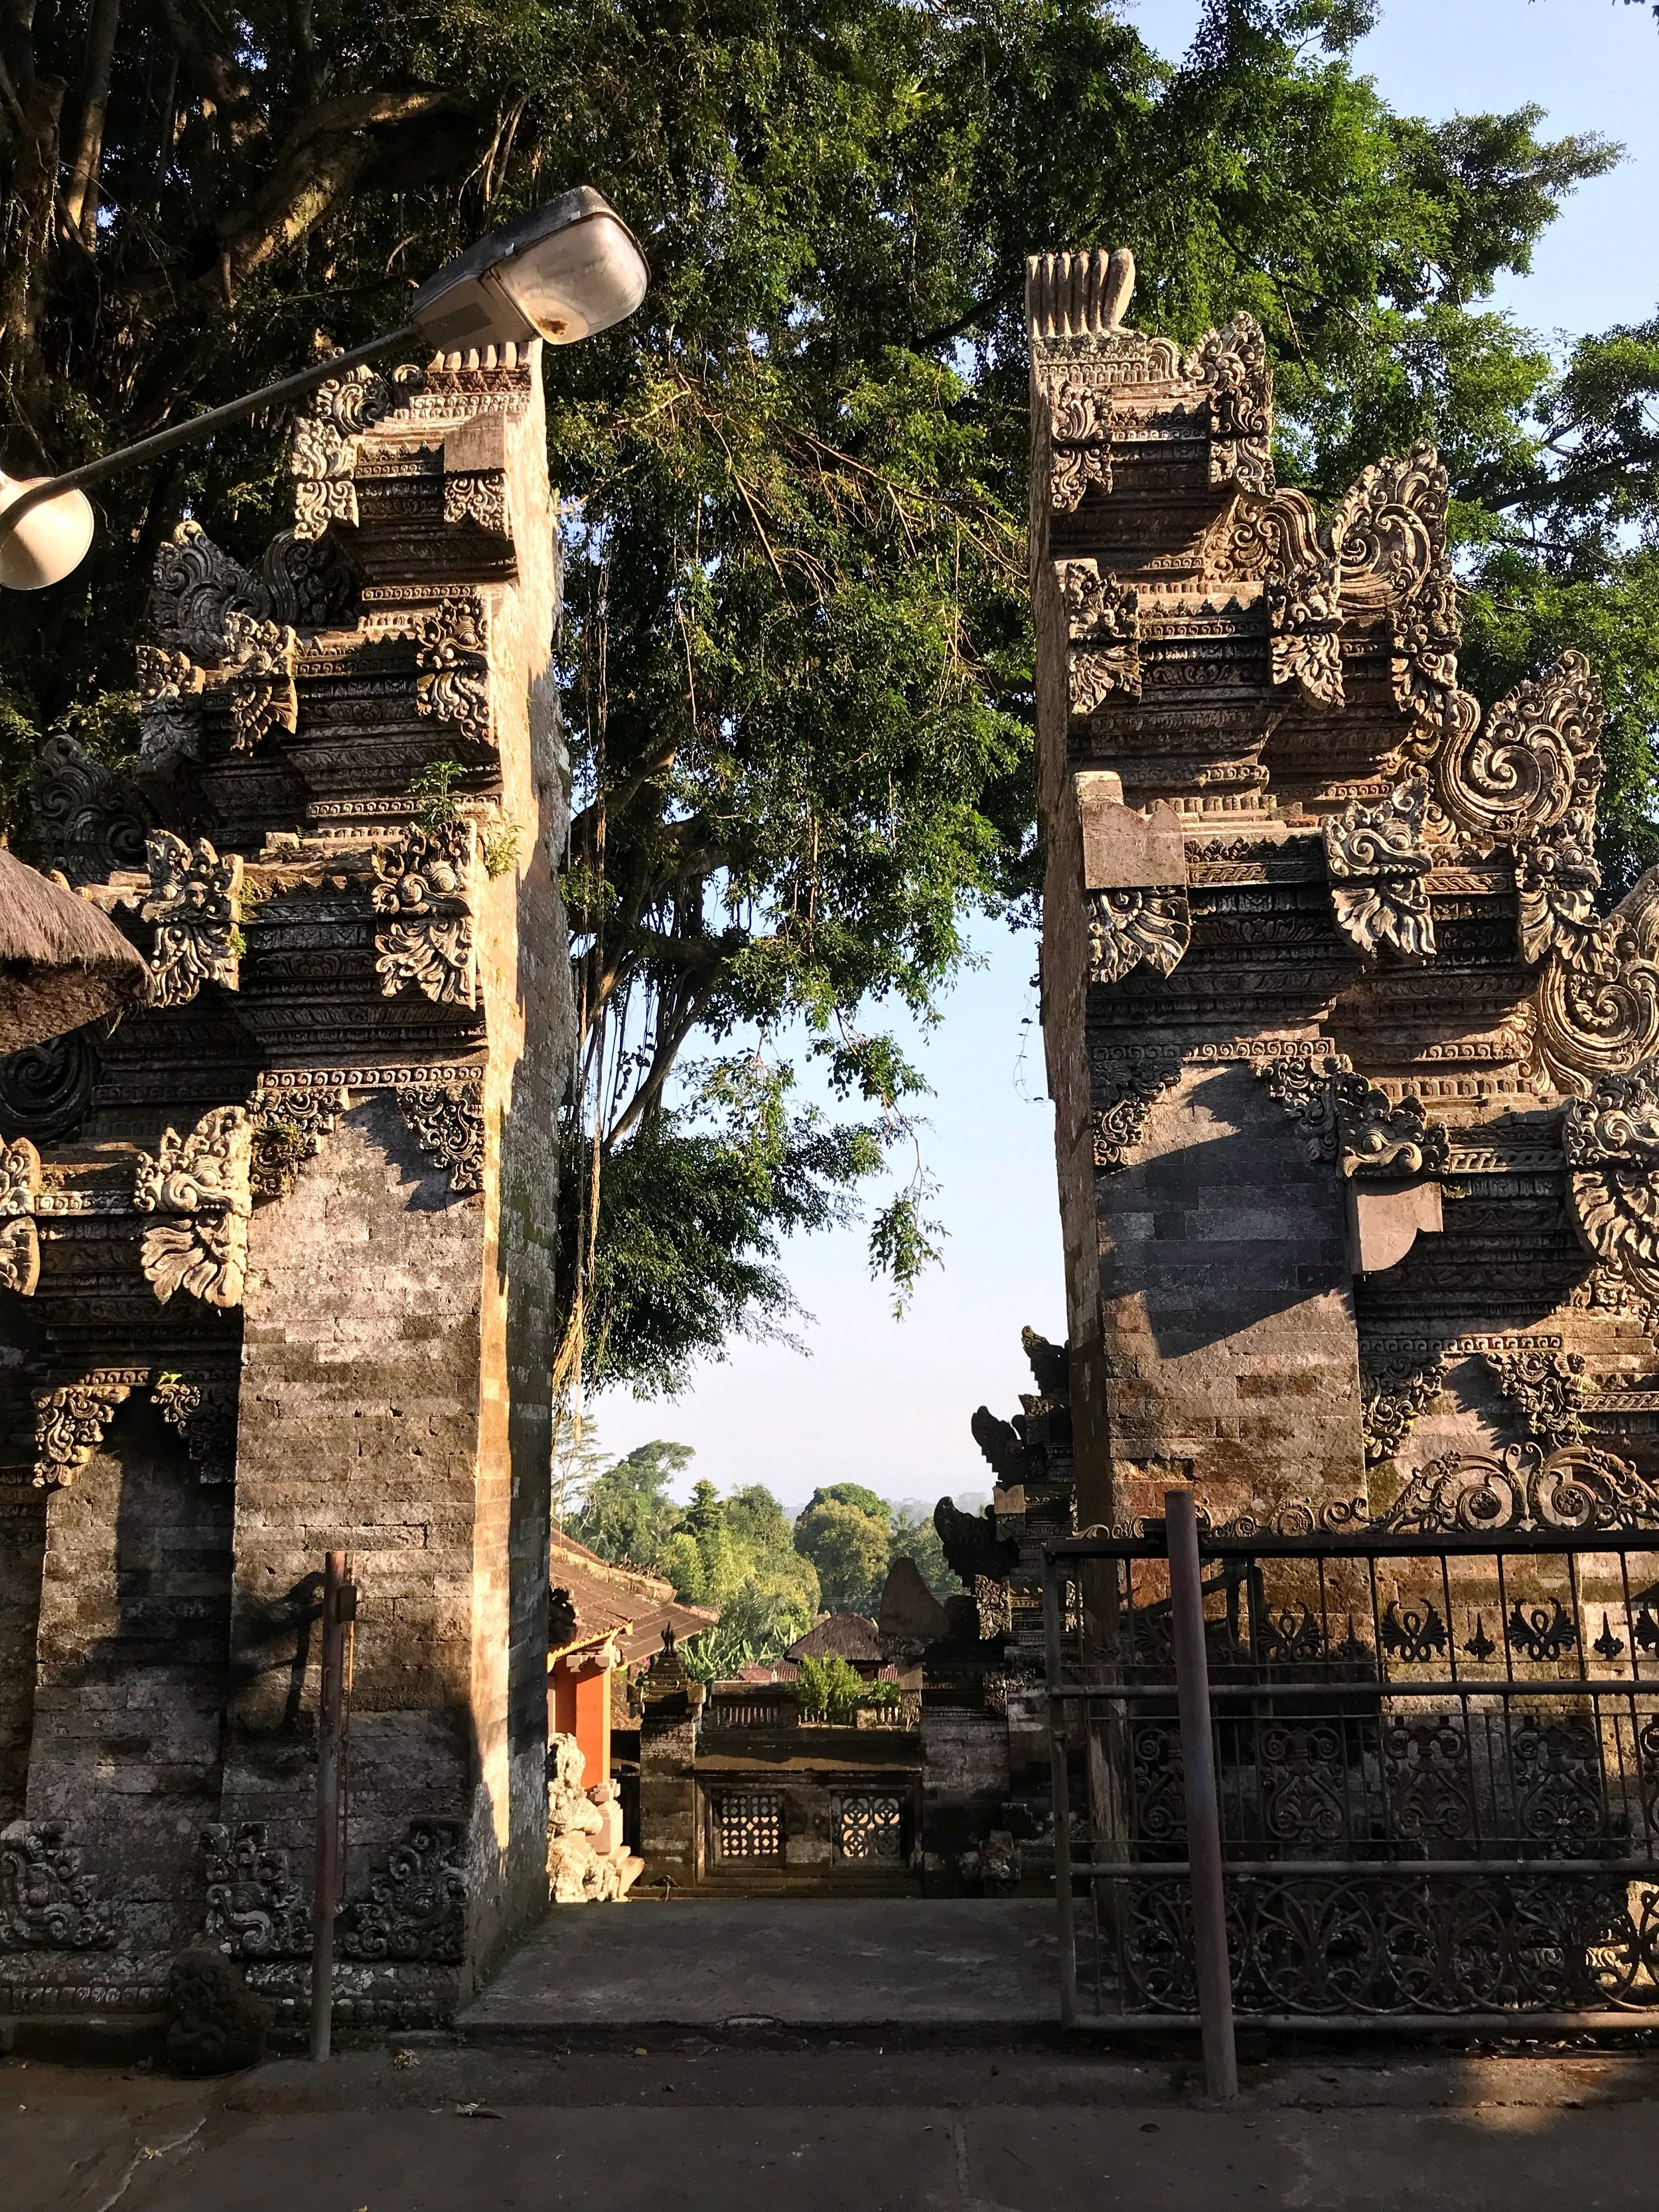 Candi bentars are dramatic features of many Balinese temples, and represent the split halves of Mount Meru